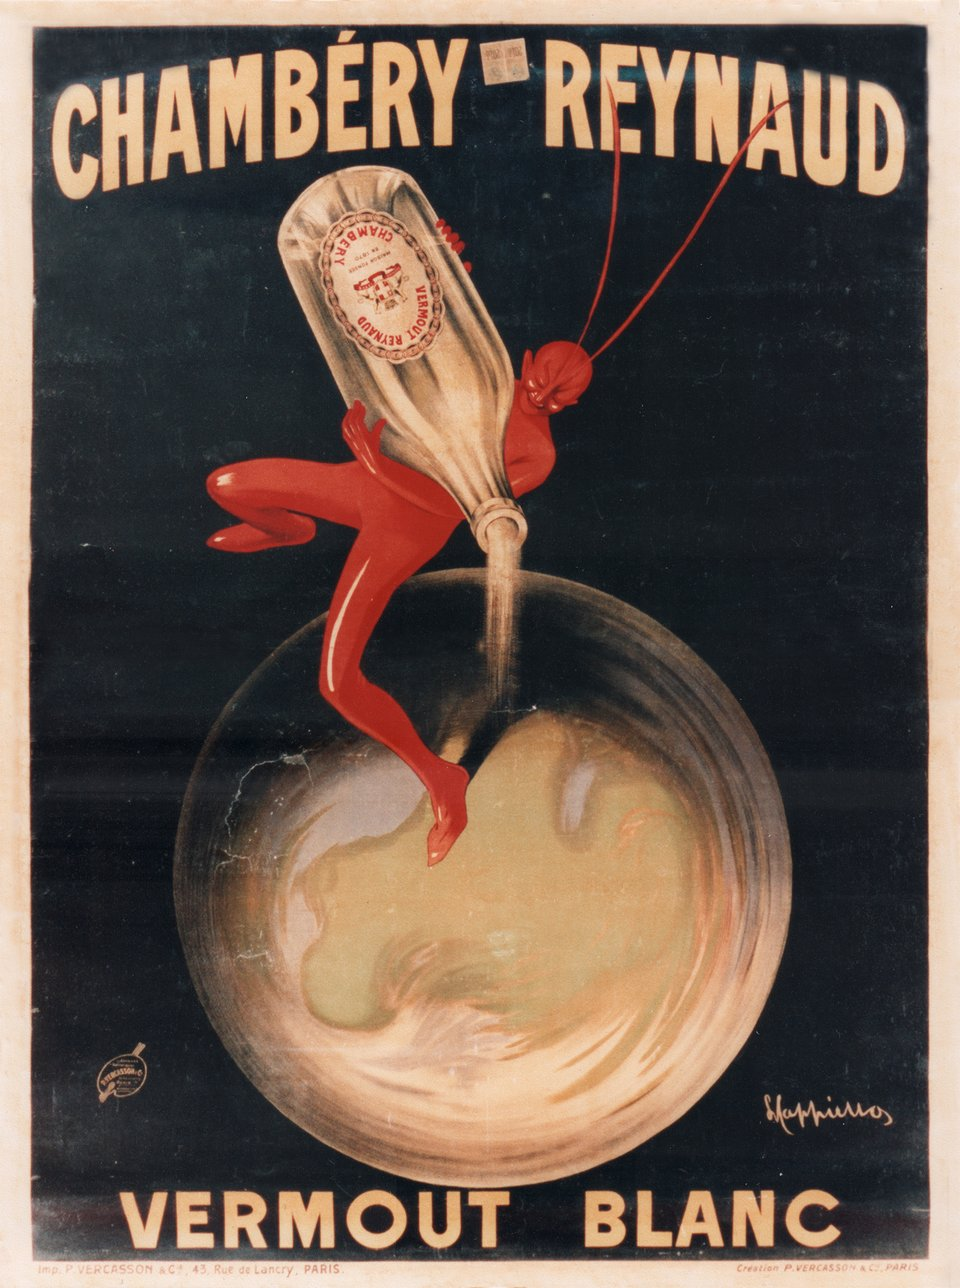 Chambéry Reynaud, vermout blanc – Vintage poster – Leonetto CAPPIELLO – 1910